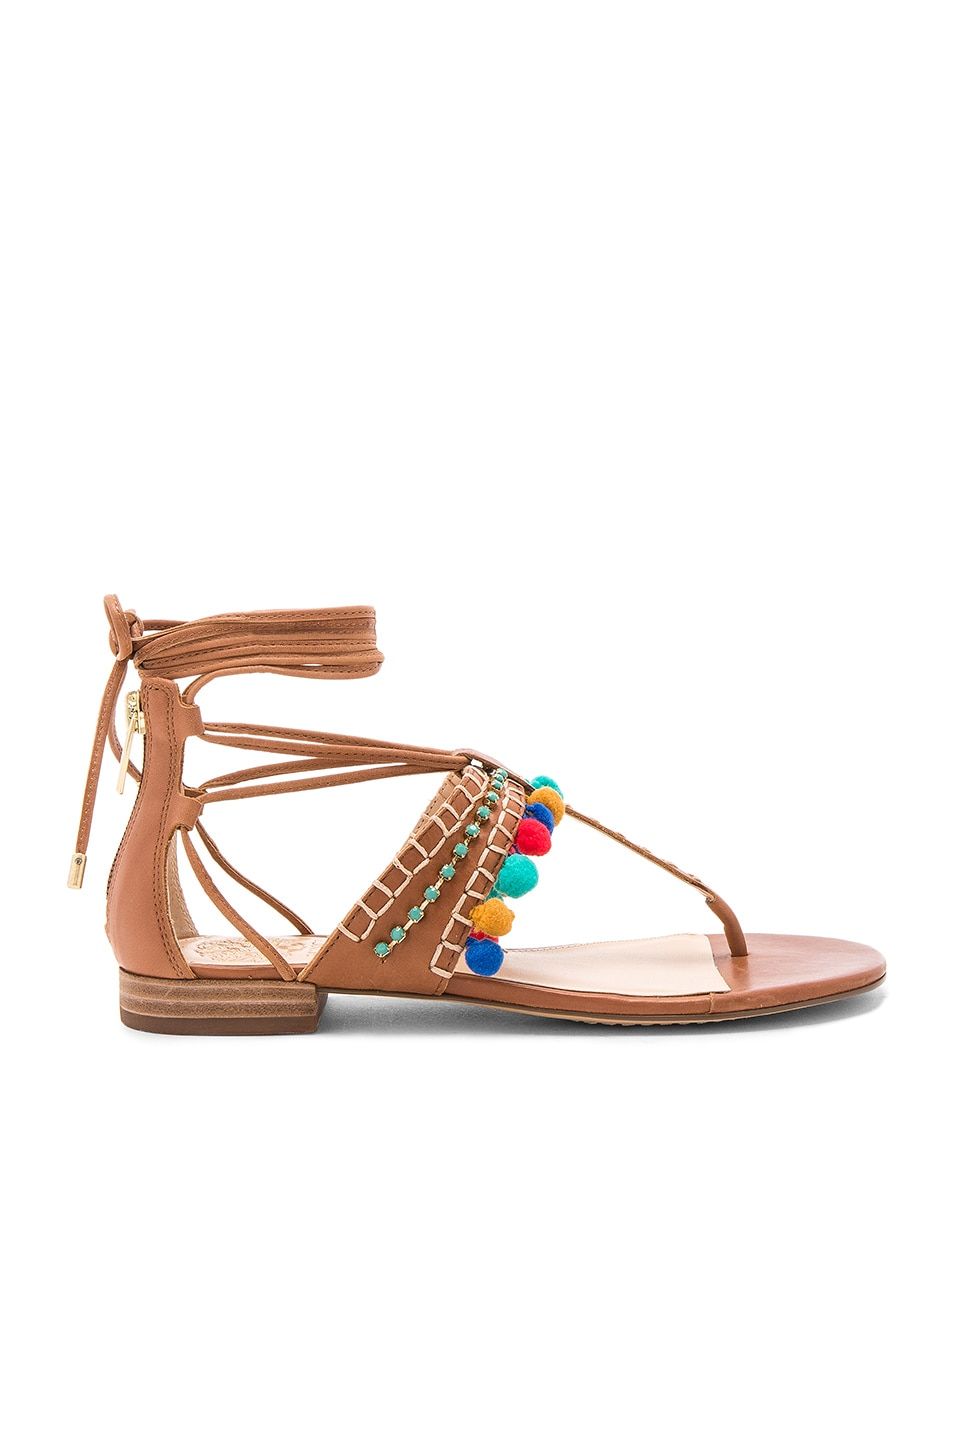 Vince Camuto Balisa Sandal in Whiskey Barrel